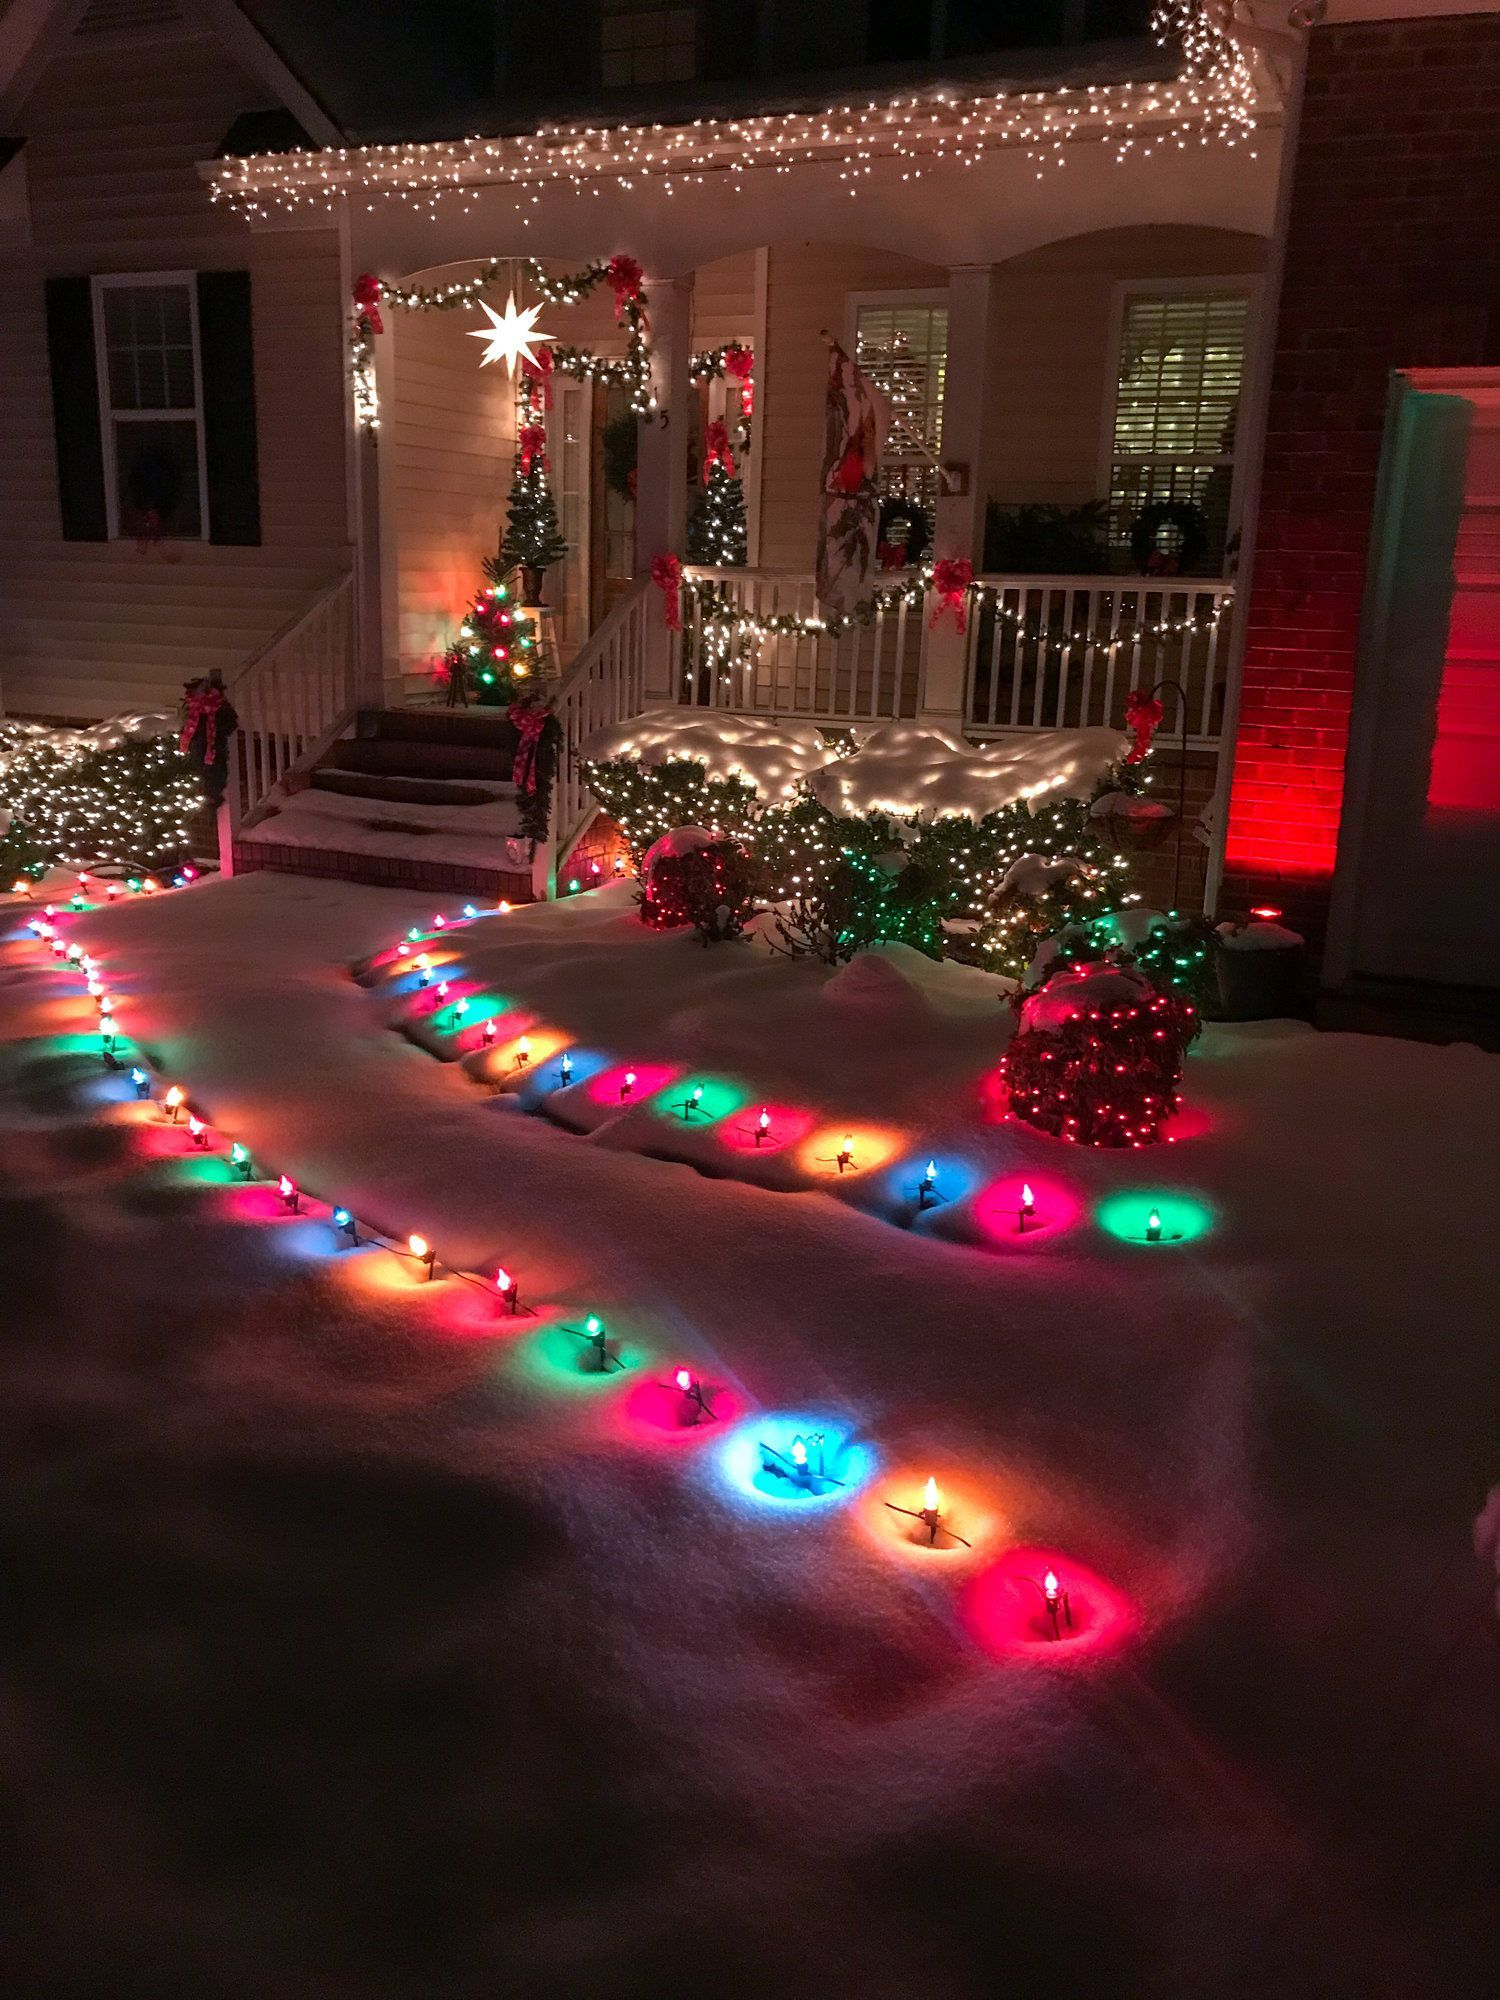 Colorful Outdoor Christmas Lights Showing Off In The Snow Christmas House Lights Outdoor Christmas Lights Outdoor Christmas Decorations Lights